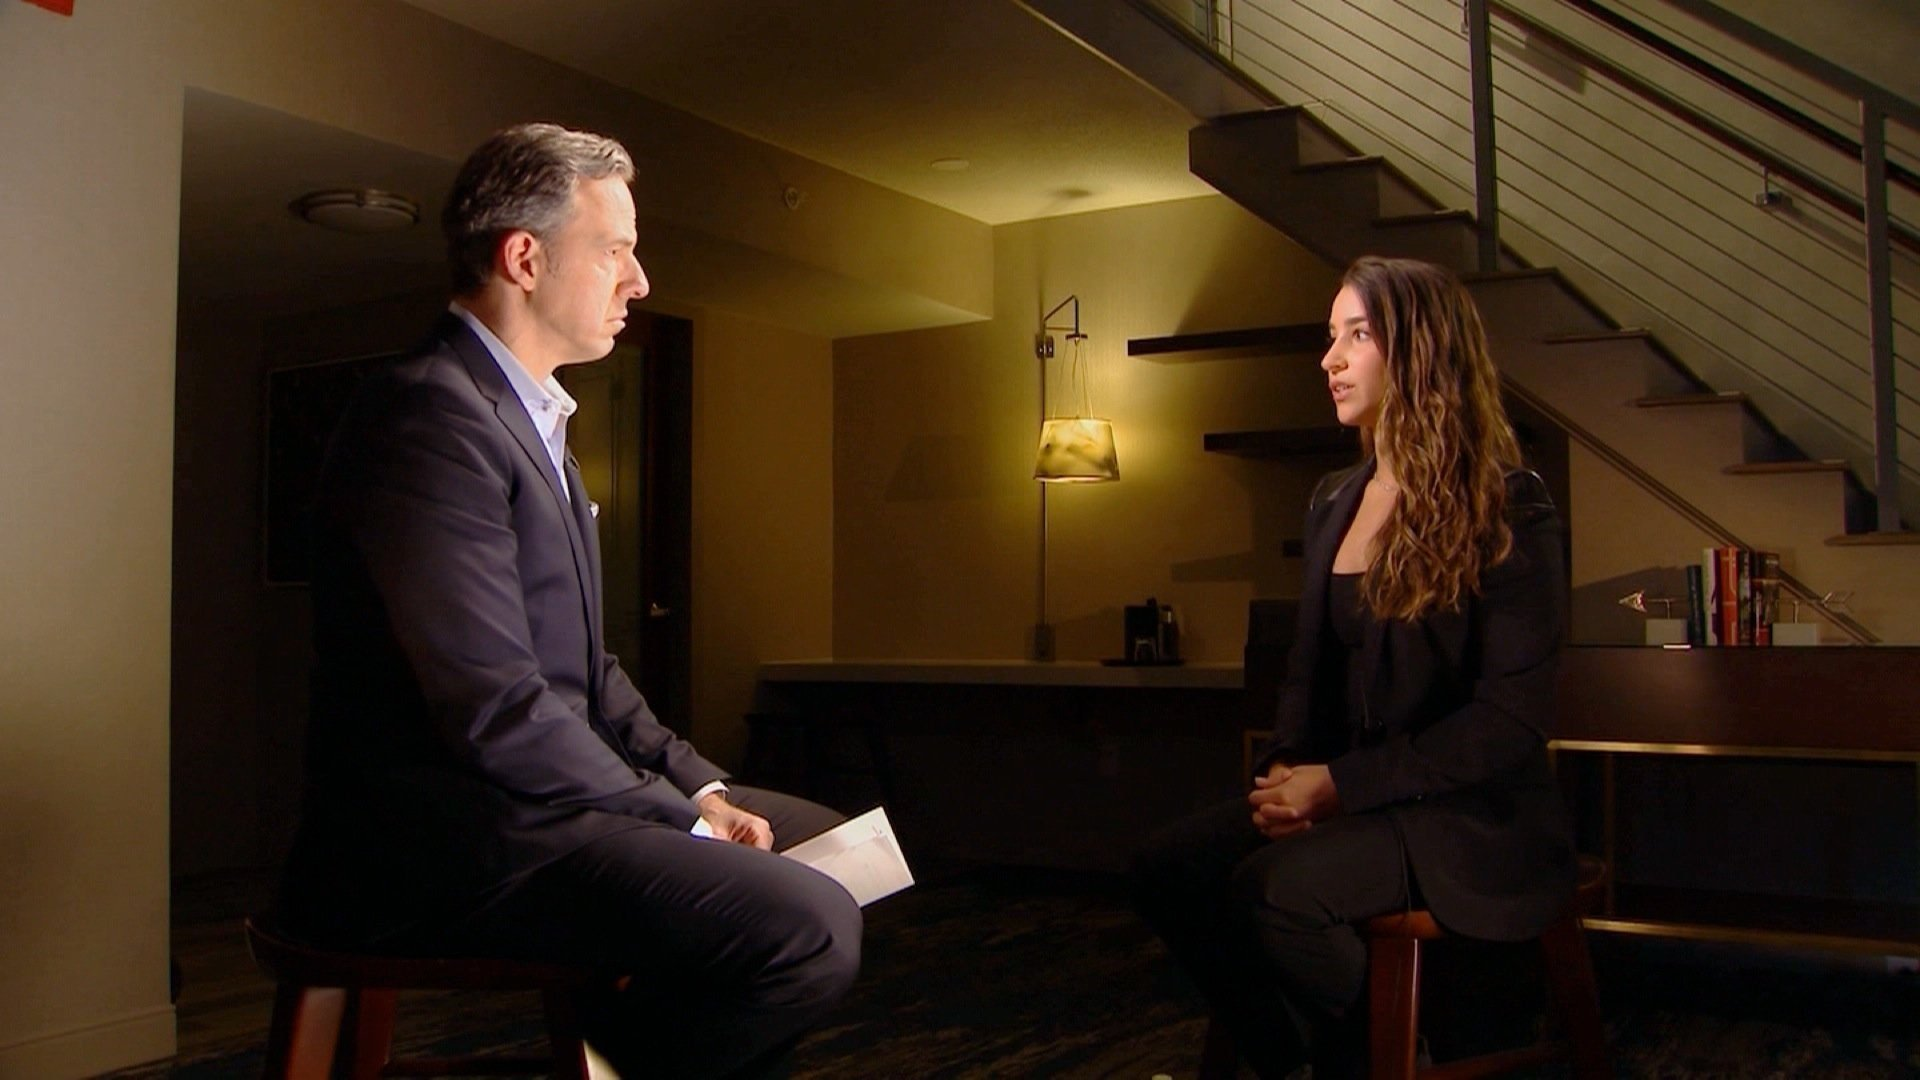 Olympic gold medalist Aly Raisman is calling for a thorough, publicly-released investigation into the sexual abuse of gymnasts in an interview with CNN's Jake Tapper.